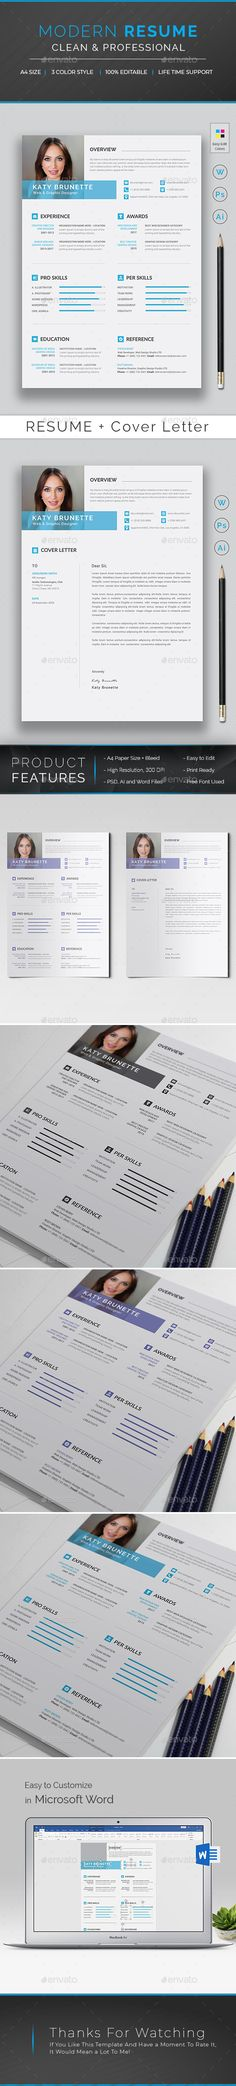 Professional, Modern and Clean Resume Template. Elegant page designs are easy to use and customize, so you can quickly tailor-make your resume for any opportunity and it will help you to get your desired job. Flexibilities of this Clean Resume Template: Best Resume, Resume Cv, Resume Design, Change Picture, Change Image, Stationery Templates, Resume Templates, Cv Template, Print Templates